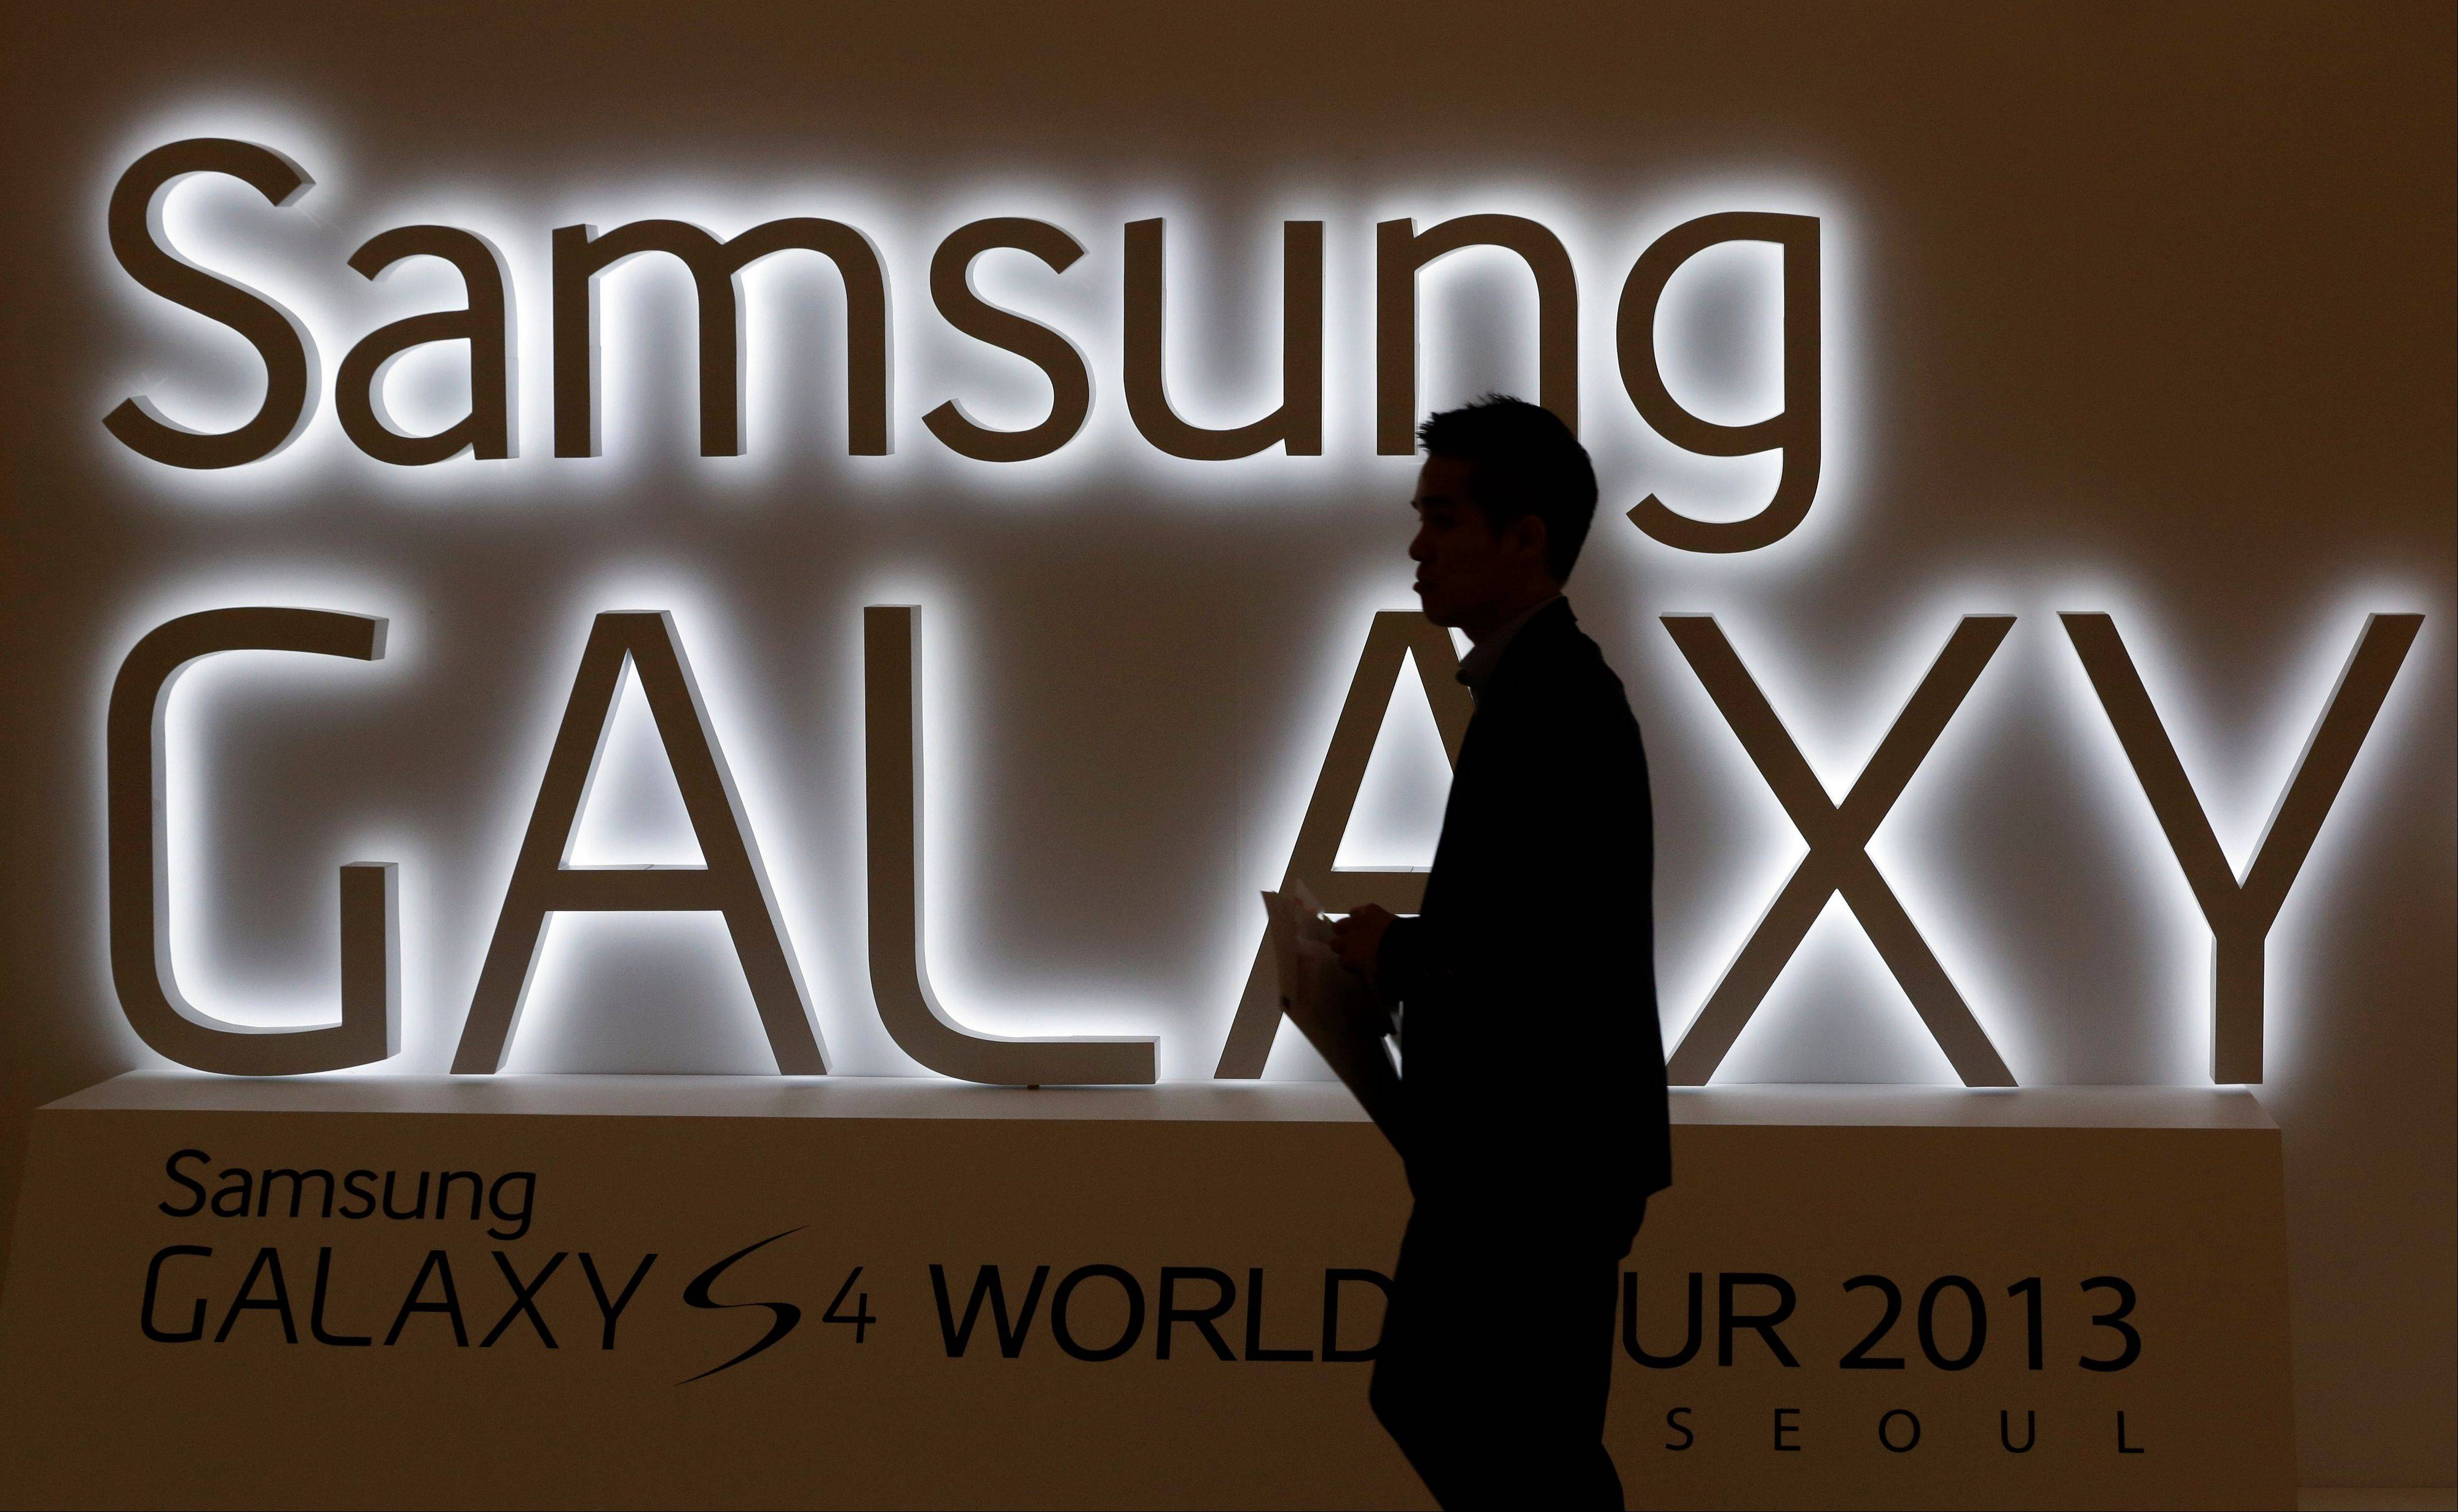 A man walks by a logo of Samsung Electronics Co.'s latest smartphone Galaxy S4 during its unveiling ceremony in Seoul, South Korea. Samsung Electronics Co. has applied for U.S. and South Korean trademarks for a watch that connects to the Internet in the latest sign that consumer technology companies see wearable devices as the future of their business.